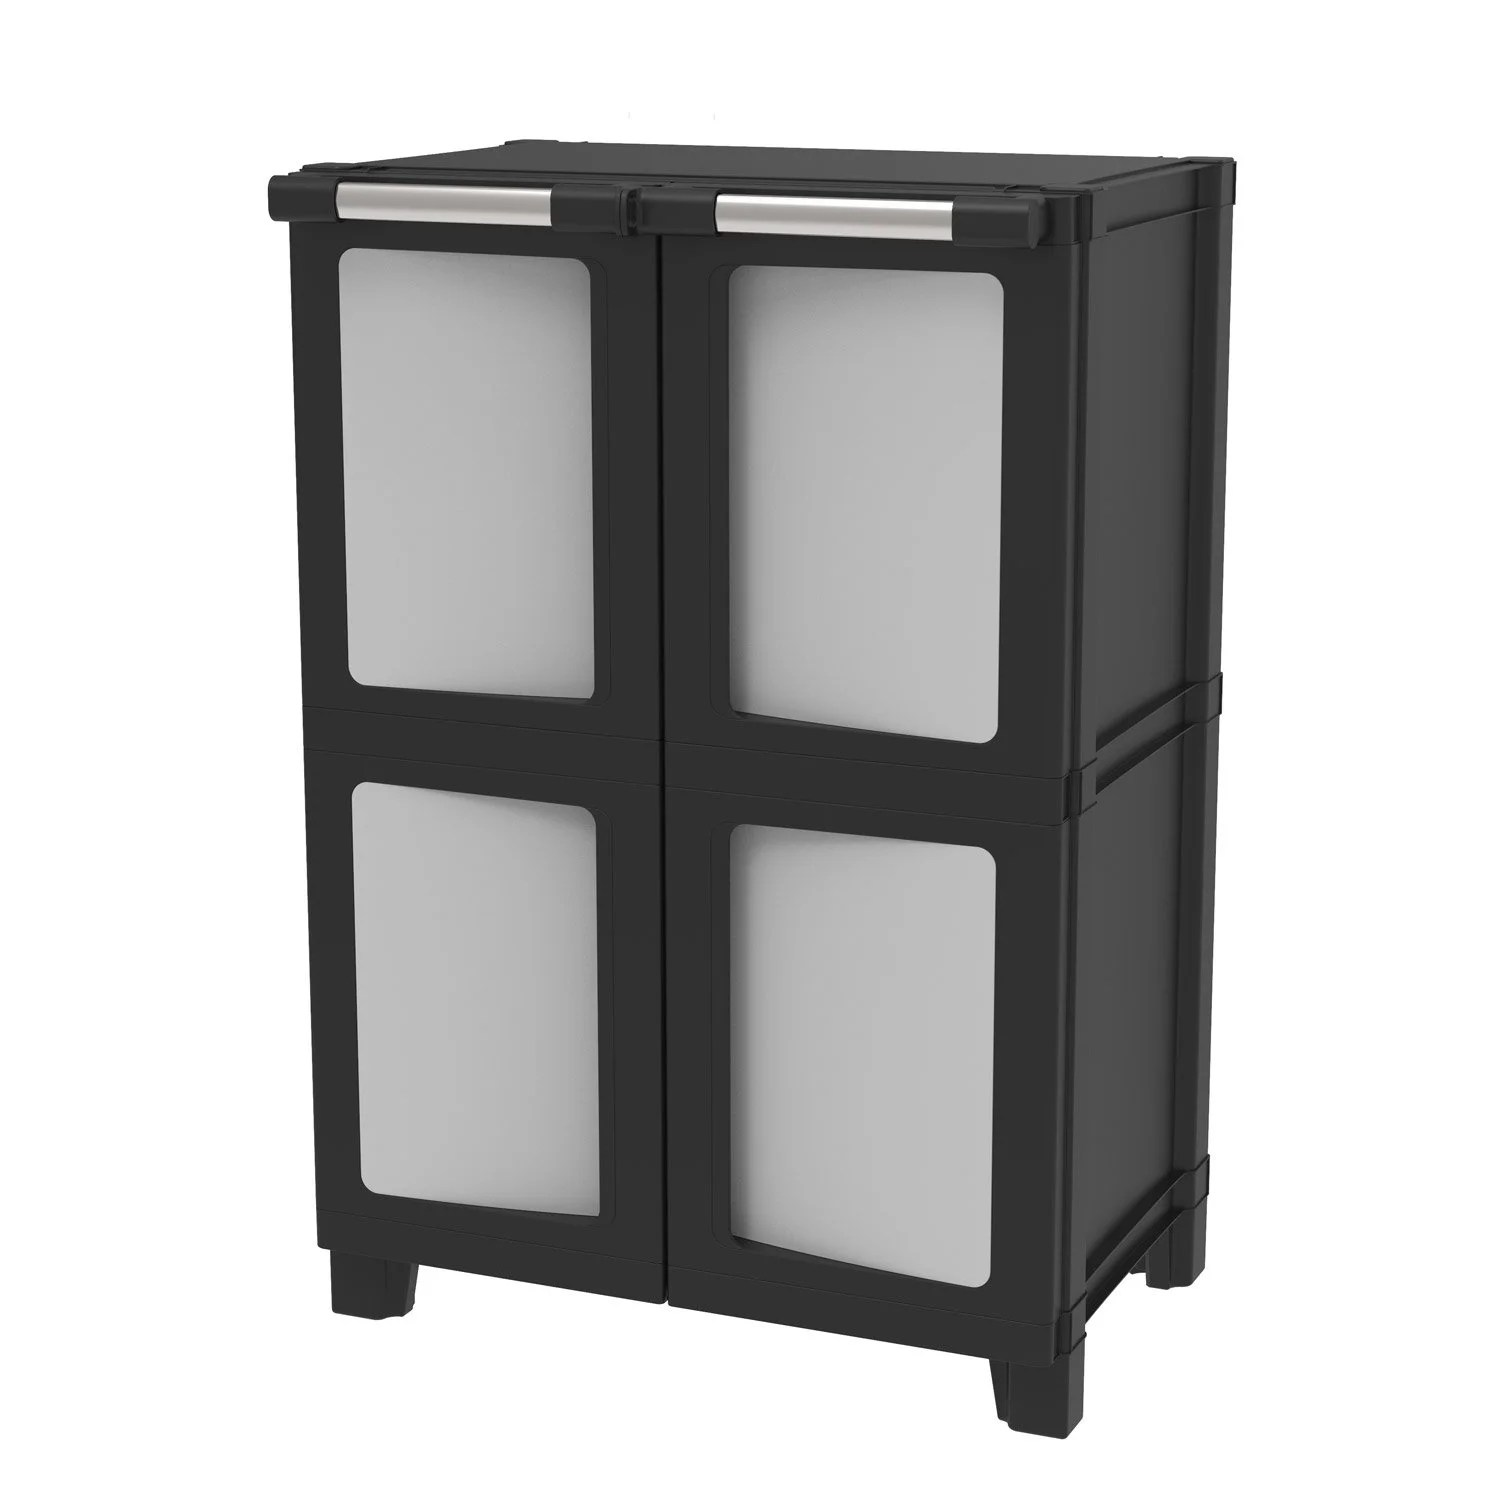 Spaceo Armoire Basse Plastique 1 Eacutetag Egravere Spaceo Modulize L65